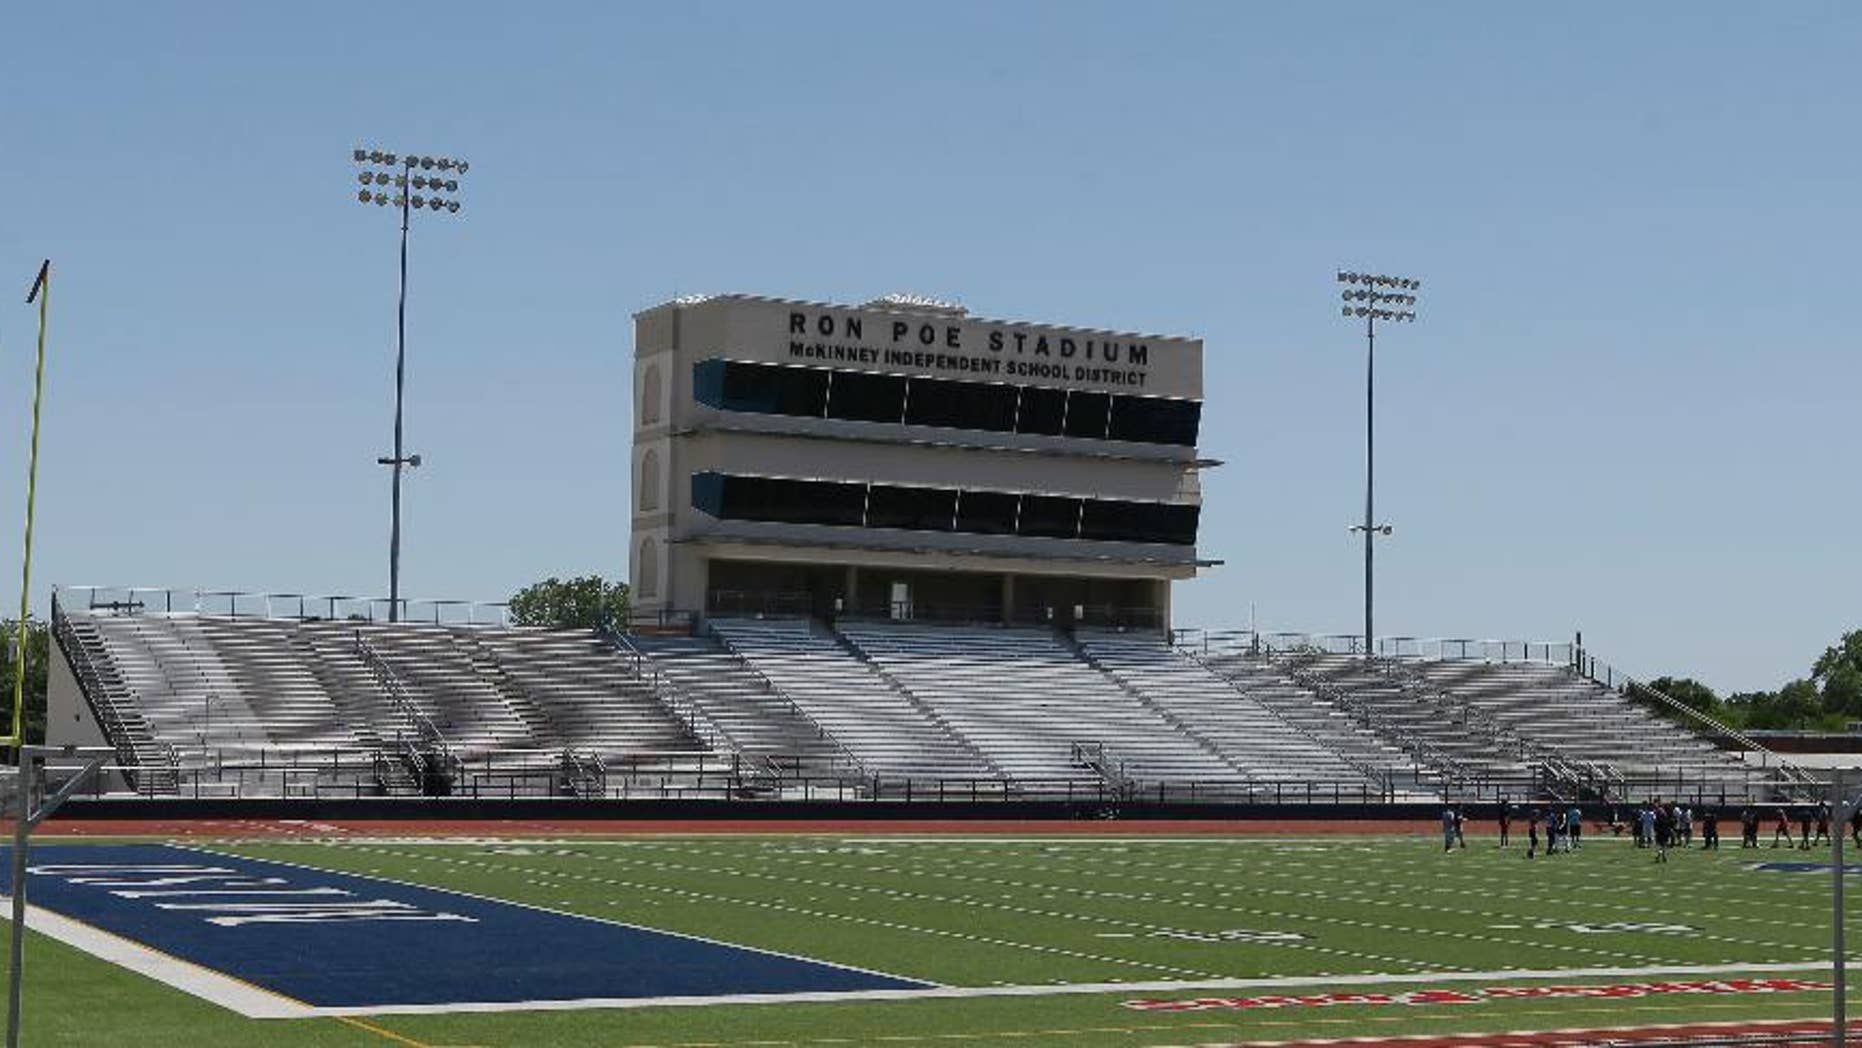 FILE - In this April 28, 2016, file photo, middle schoolers use the field in Ron Poe Stadium in McKinney, Texas. Voters in McKinney Independent School District approved a bond issue Saturday, May 7, 2016, to build a new high school football stadium. (AP Photo/LM Otero, File)